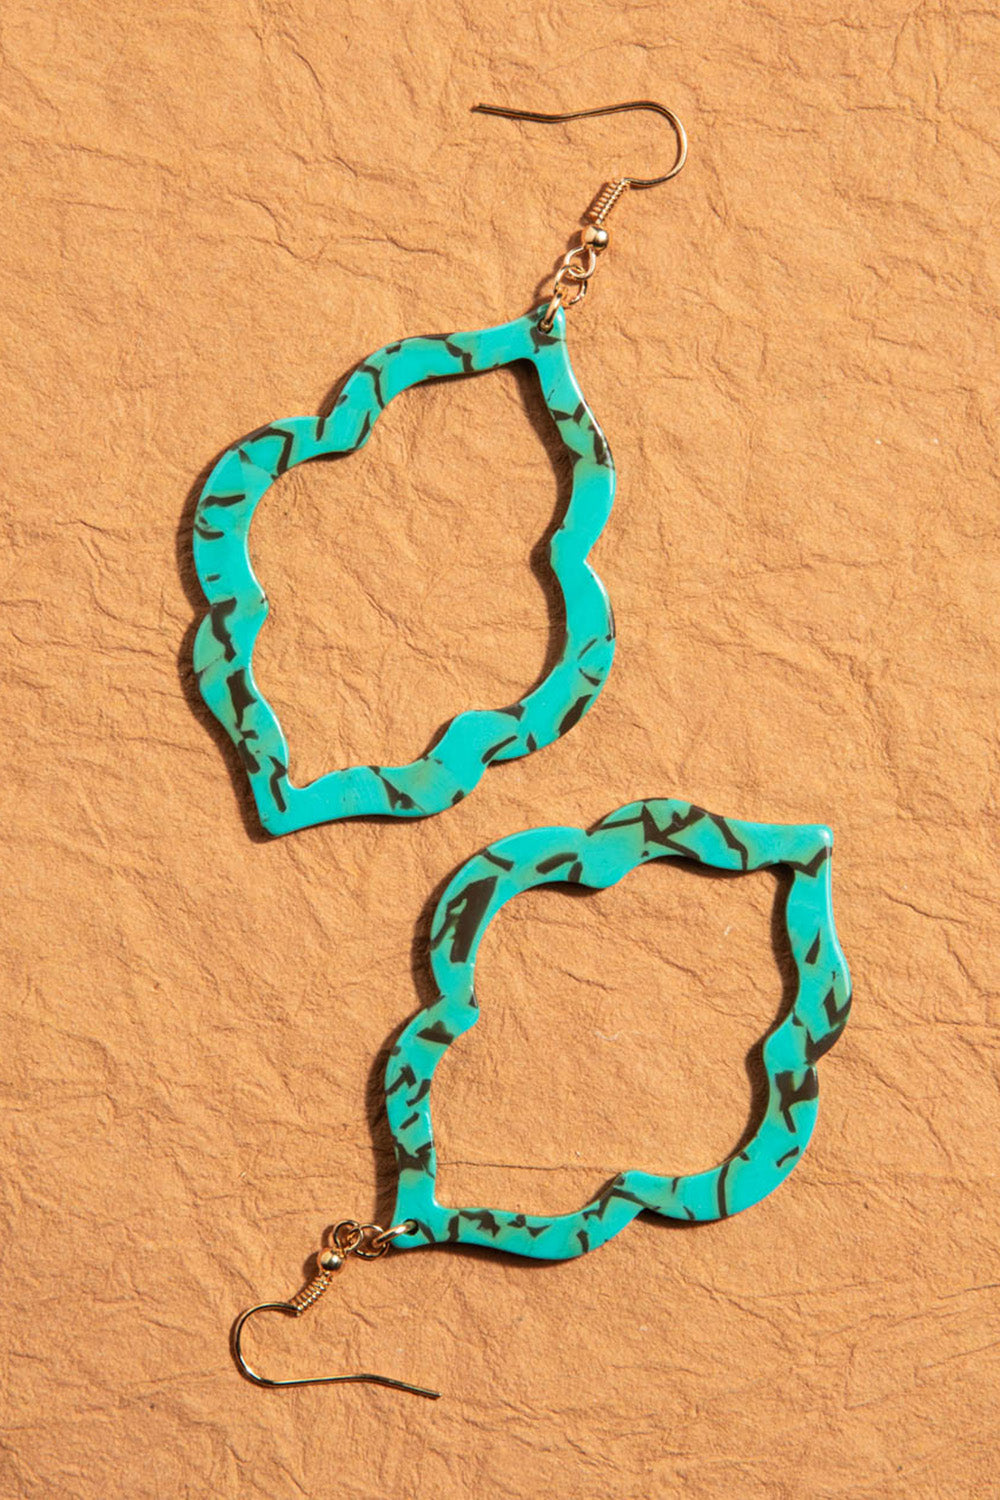 Type 3 Casablanca Earrings